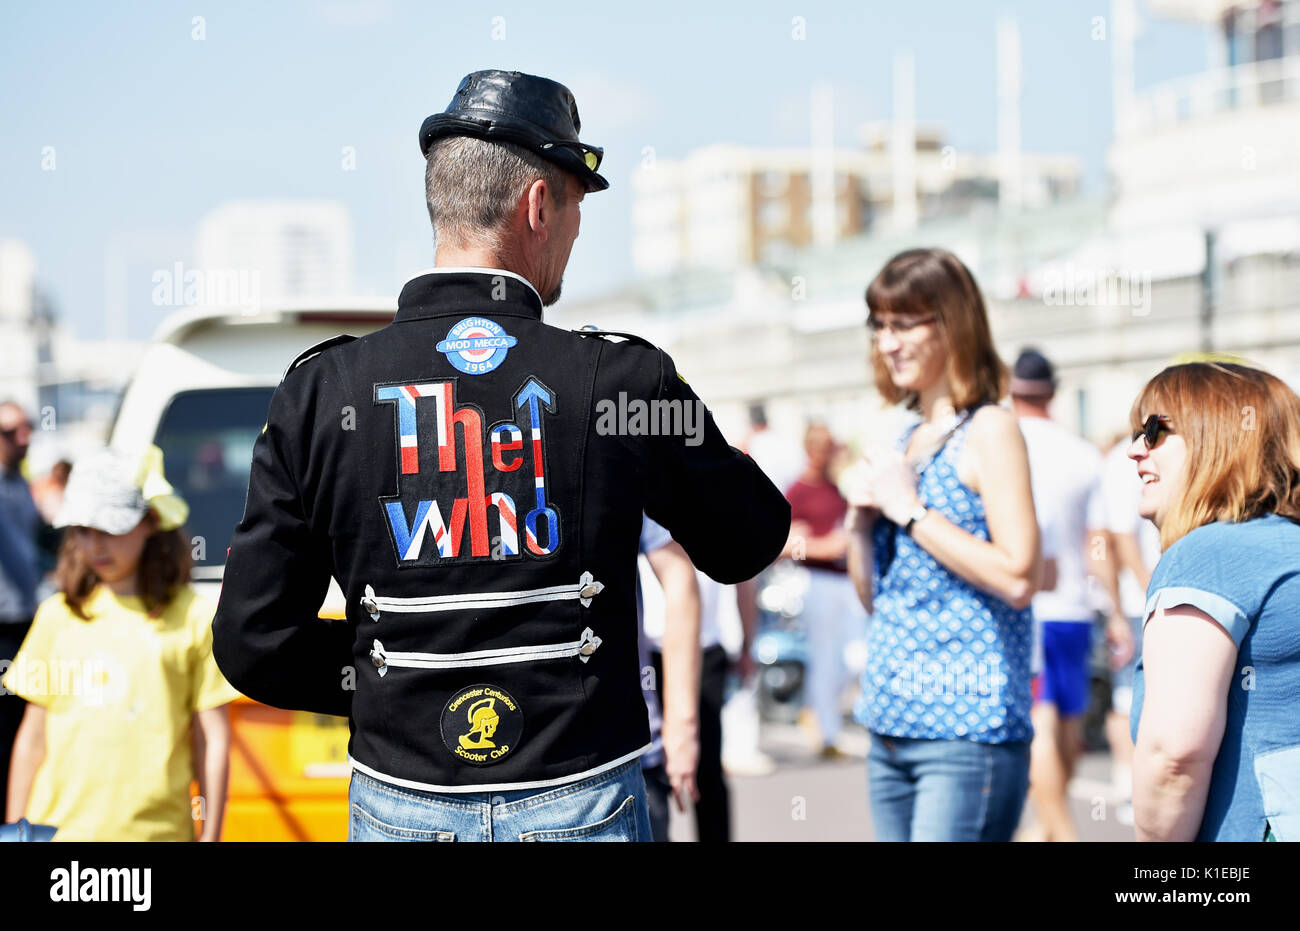 Brighton, UK. 27th Aug, 2017. PJ from Cirencester joined the hundreds of Mods taking part in the Brighton Mod Weekender event over the bank holiday weekend in beautiful hot sunny weather . Mods have tarditionally visited Brighton for the August Bank Holiday since the 1960s when there quite often used to be trouble on the seafront with battles between themselves and rockers Credit: Simon Dack/Alamy Live News - Stock Image